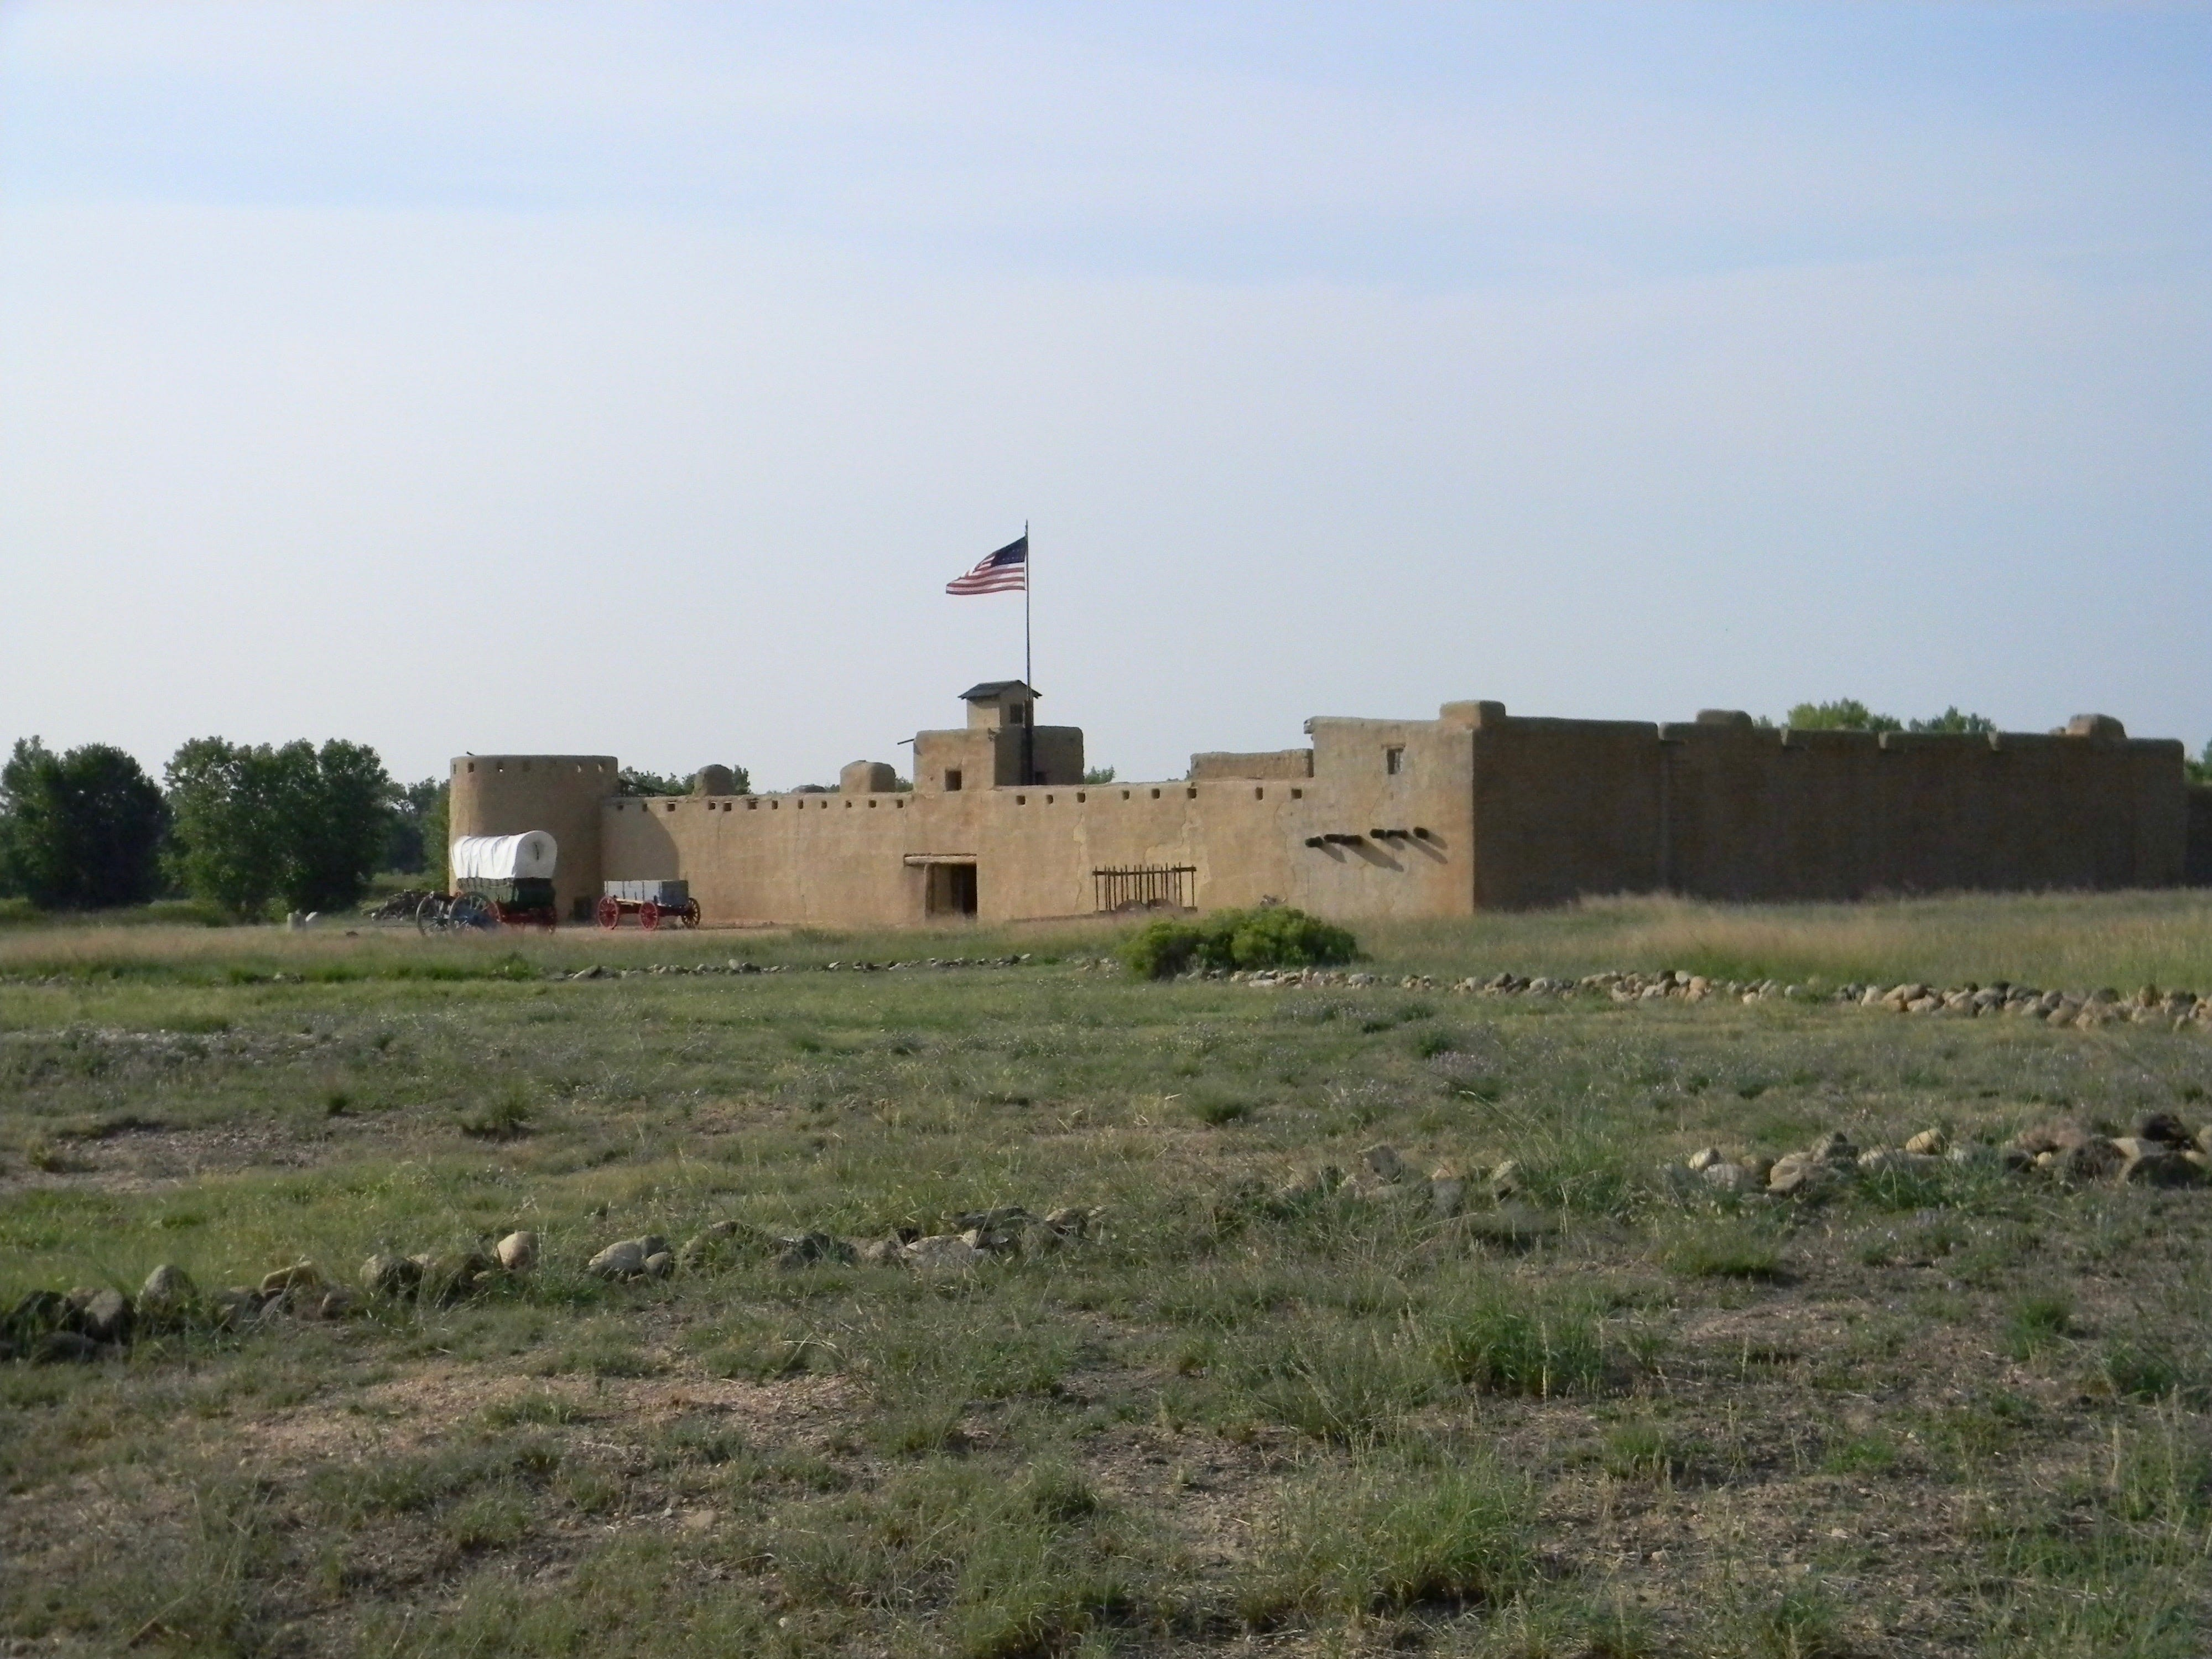 Looking more like a military post than a mercantile, Bent's Old Fort in southern Colorado warehoused and shipped goods from across most of the Rocky Mountain area to the United States — ending at the Mississippi.